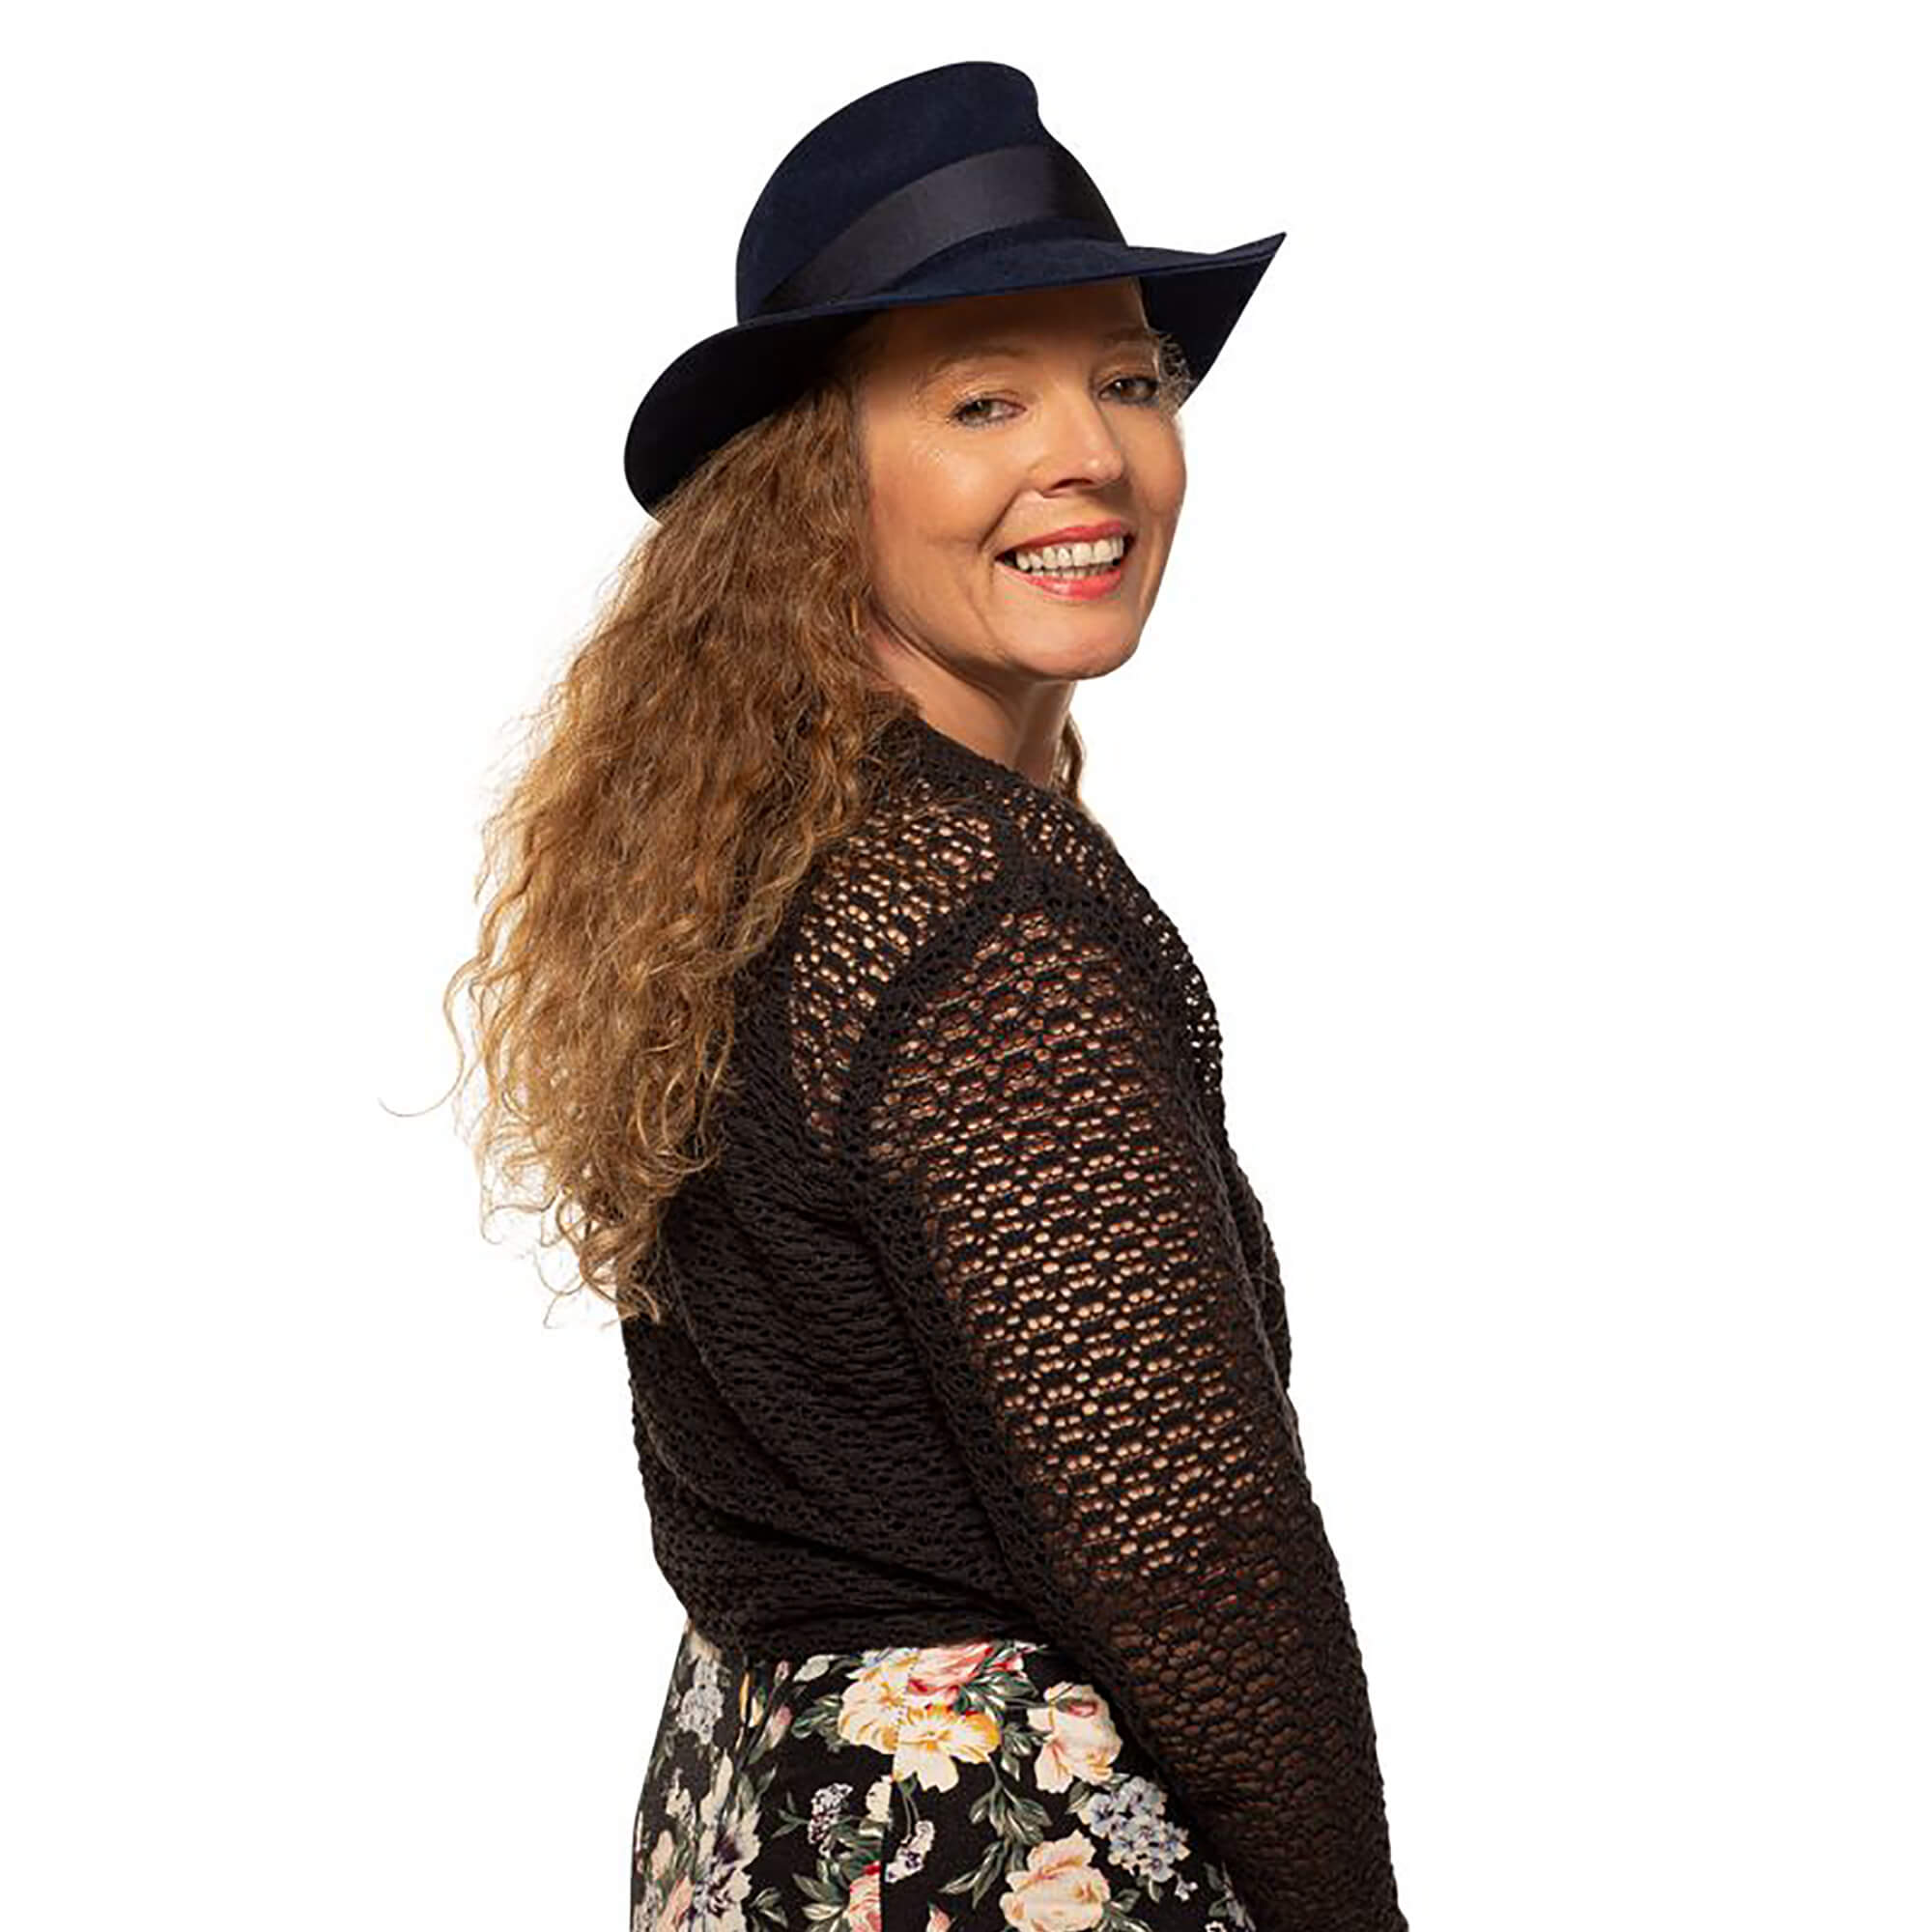 Ali standing against a white background, wearing a fedora hat, smiling.